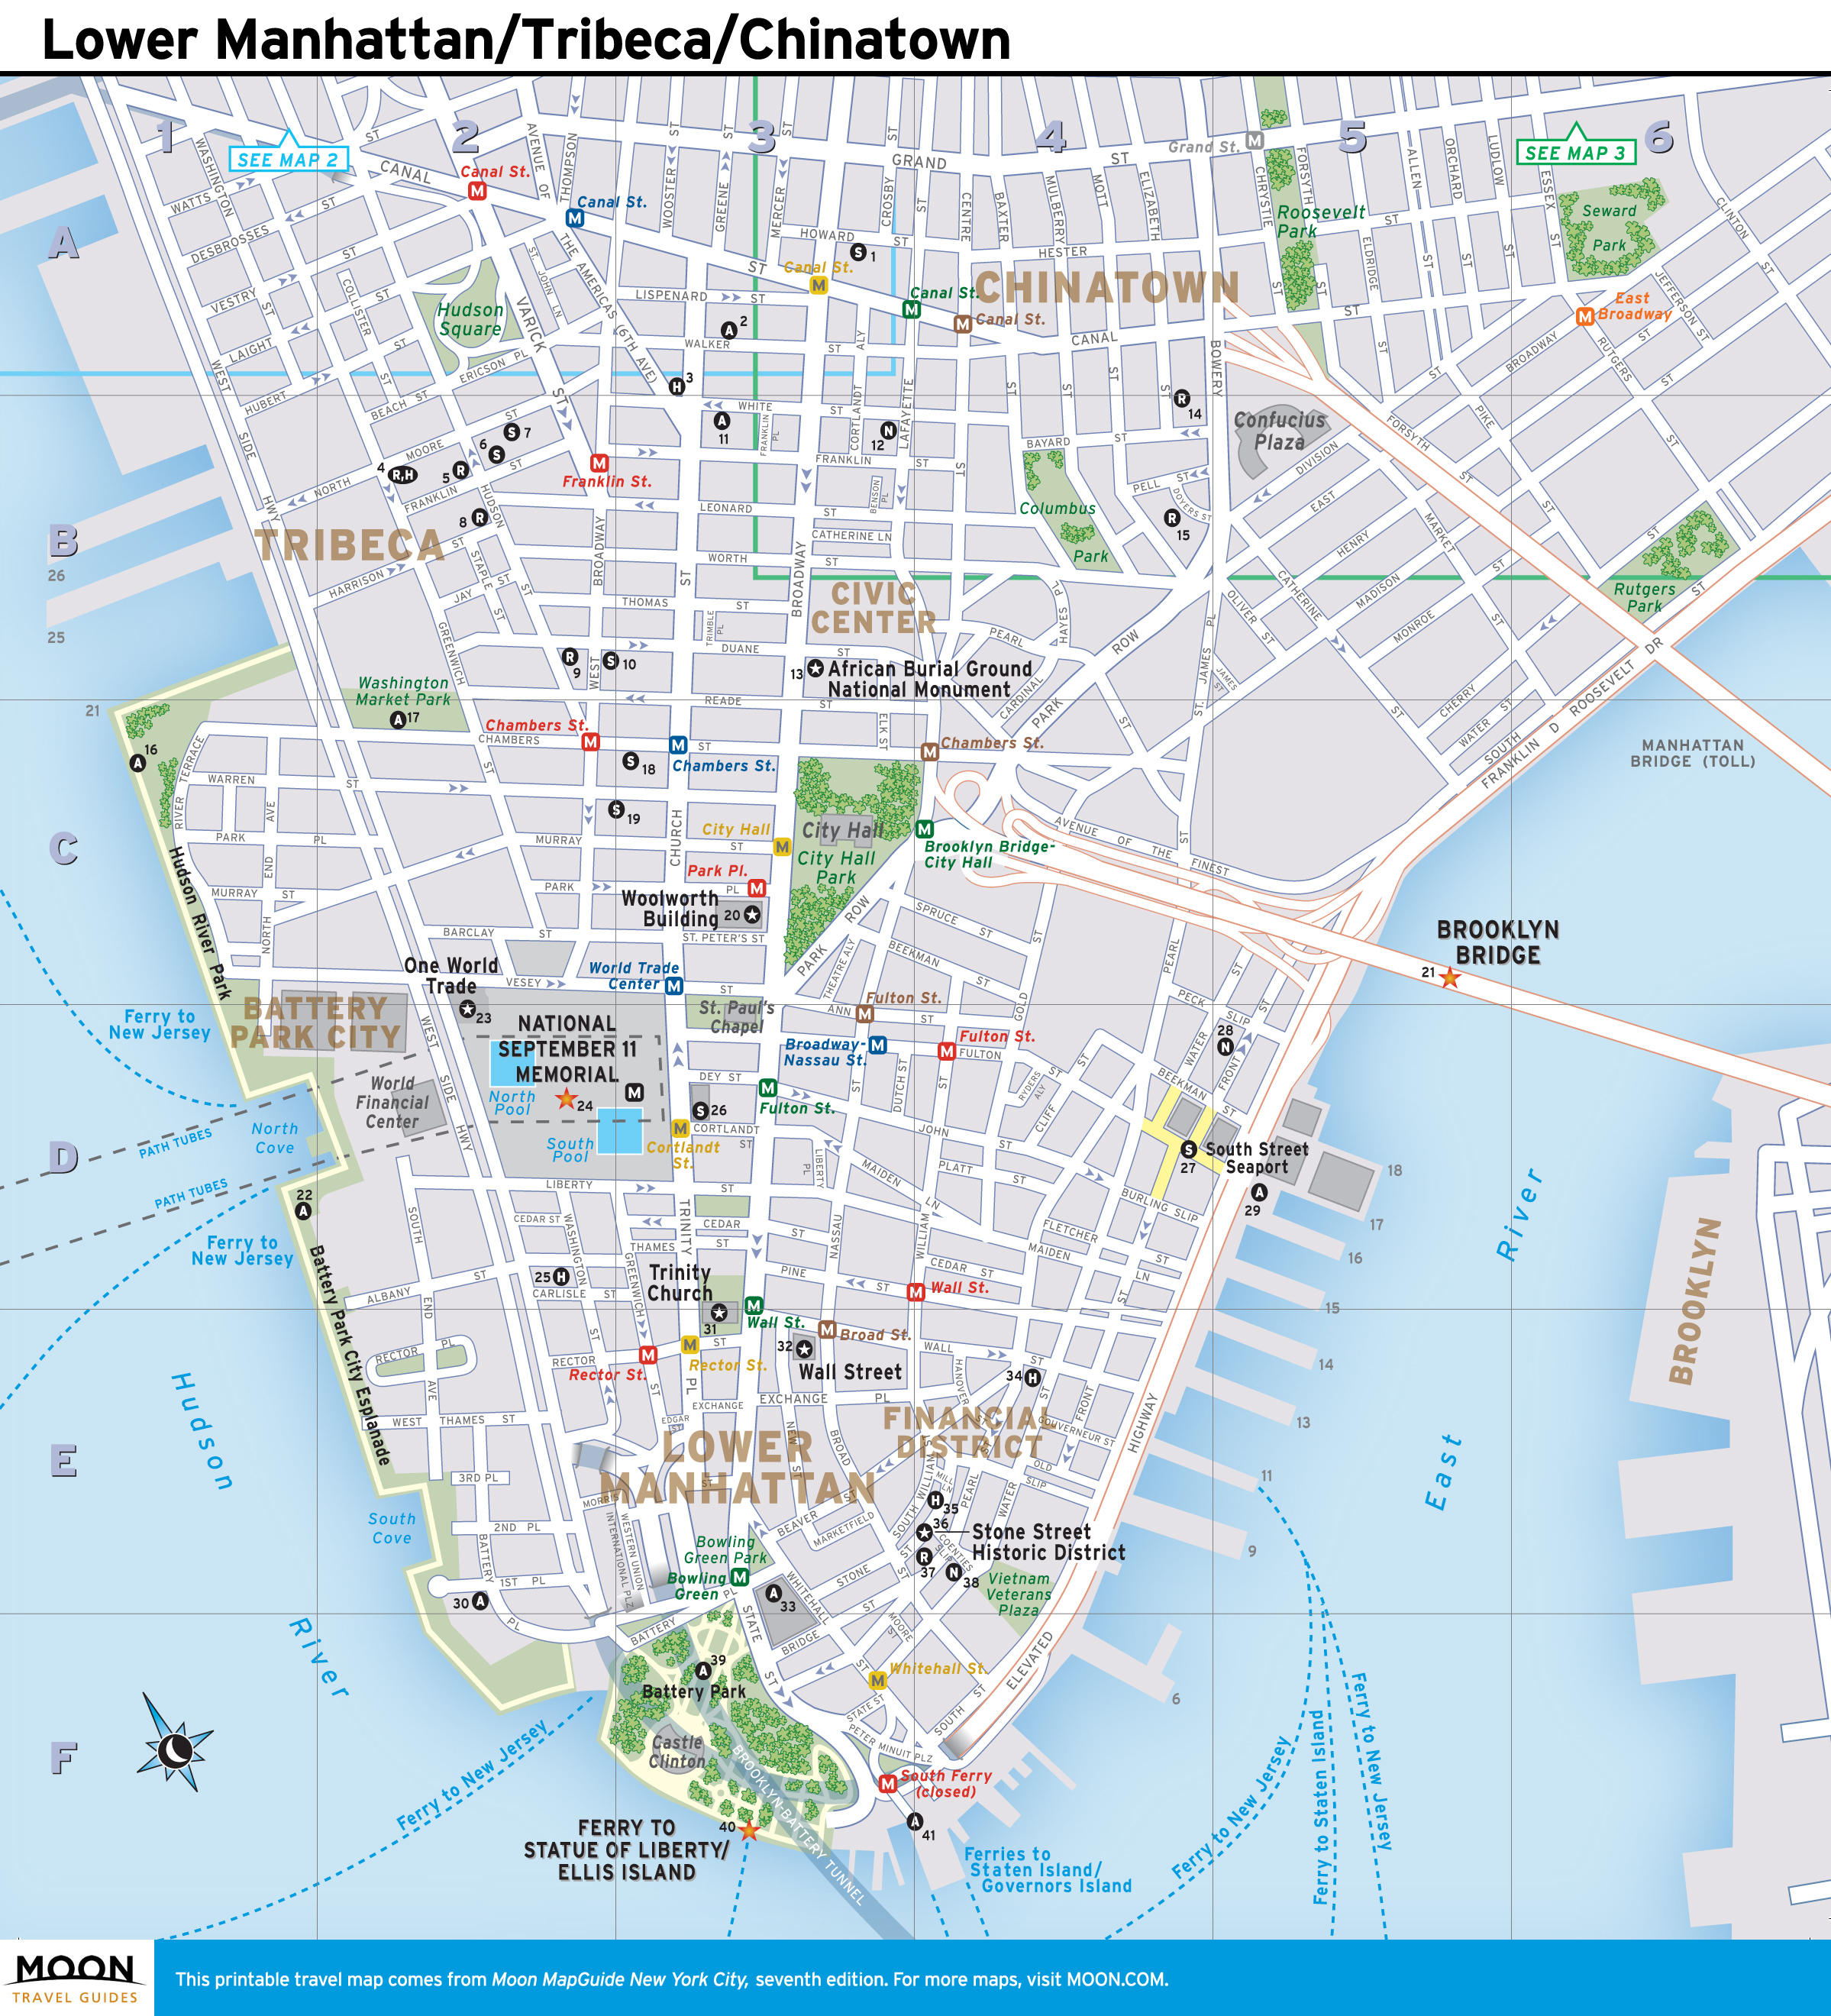 It's just a photo of Manhattan Printable Map intended for walking